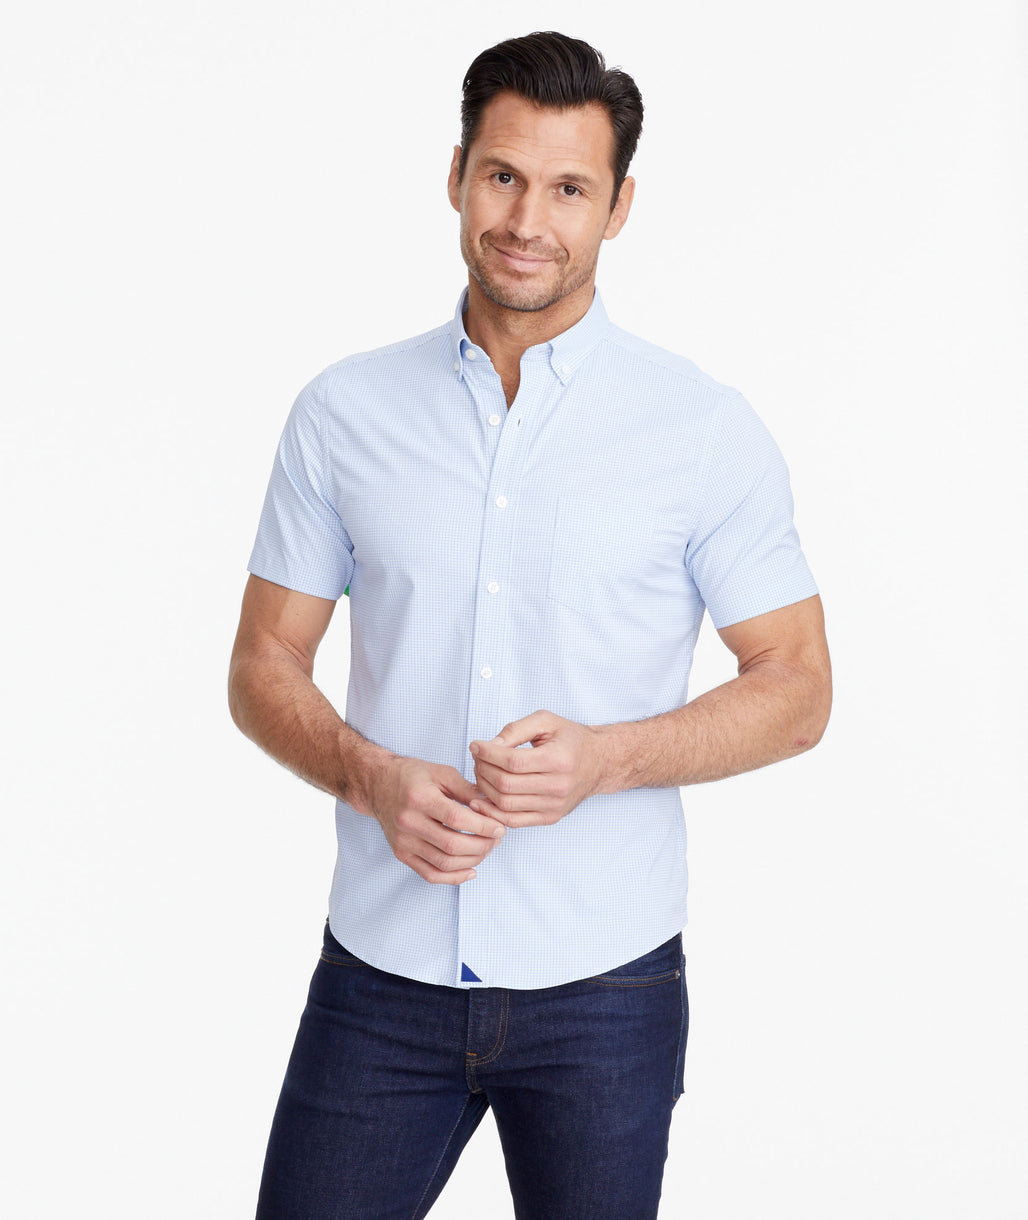 Model wearing a Light Blue Wrinkle-Free Performance+ Short-Sleeve Arcole Shirt